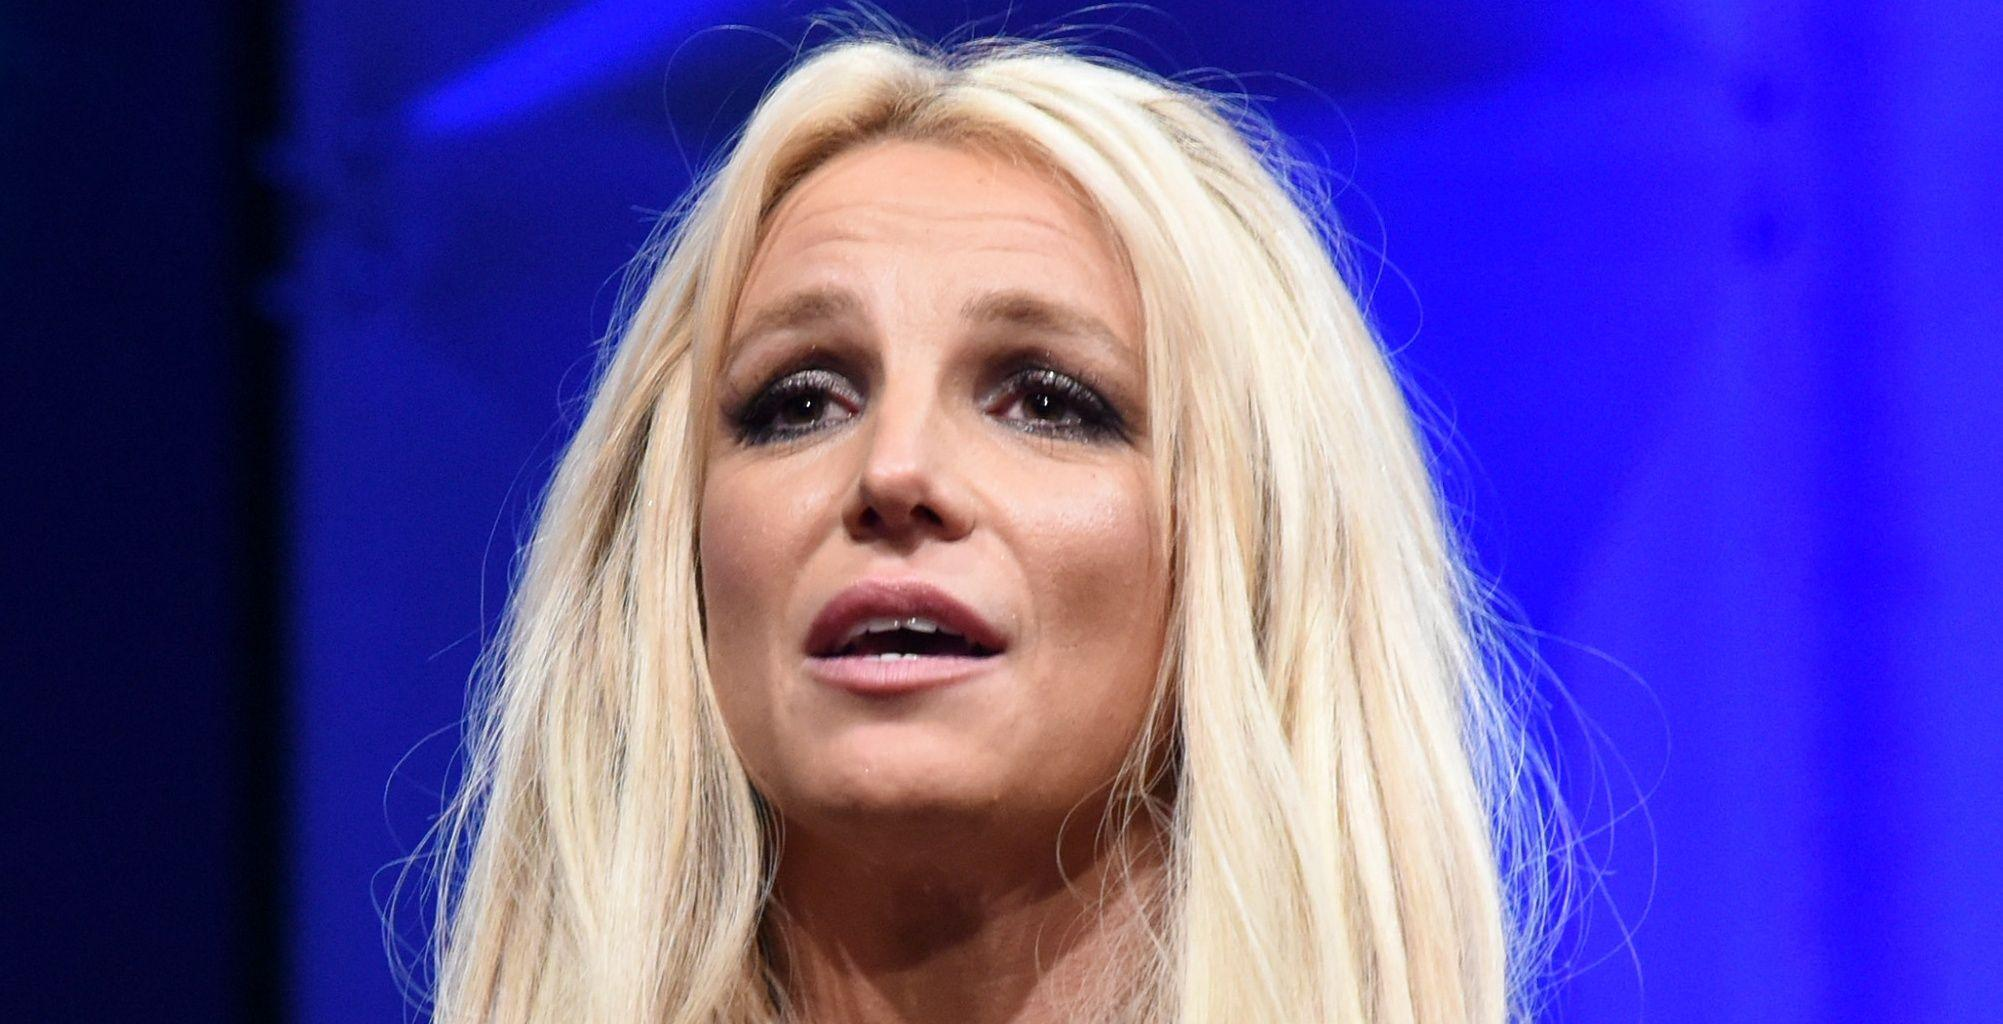 Britney Spears Says Her Documentary Made Her Cry For Weeks